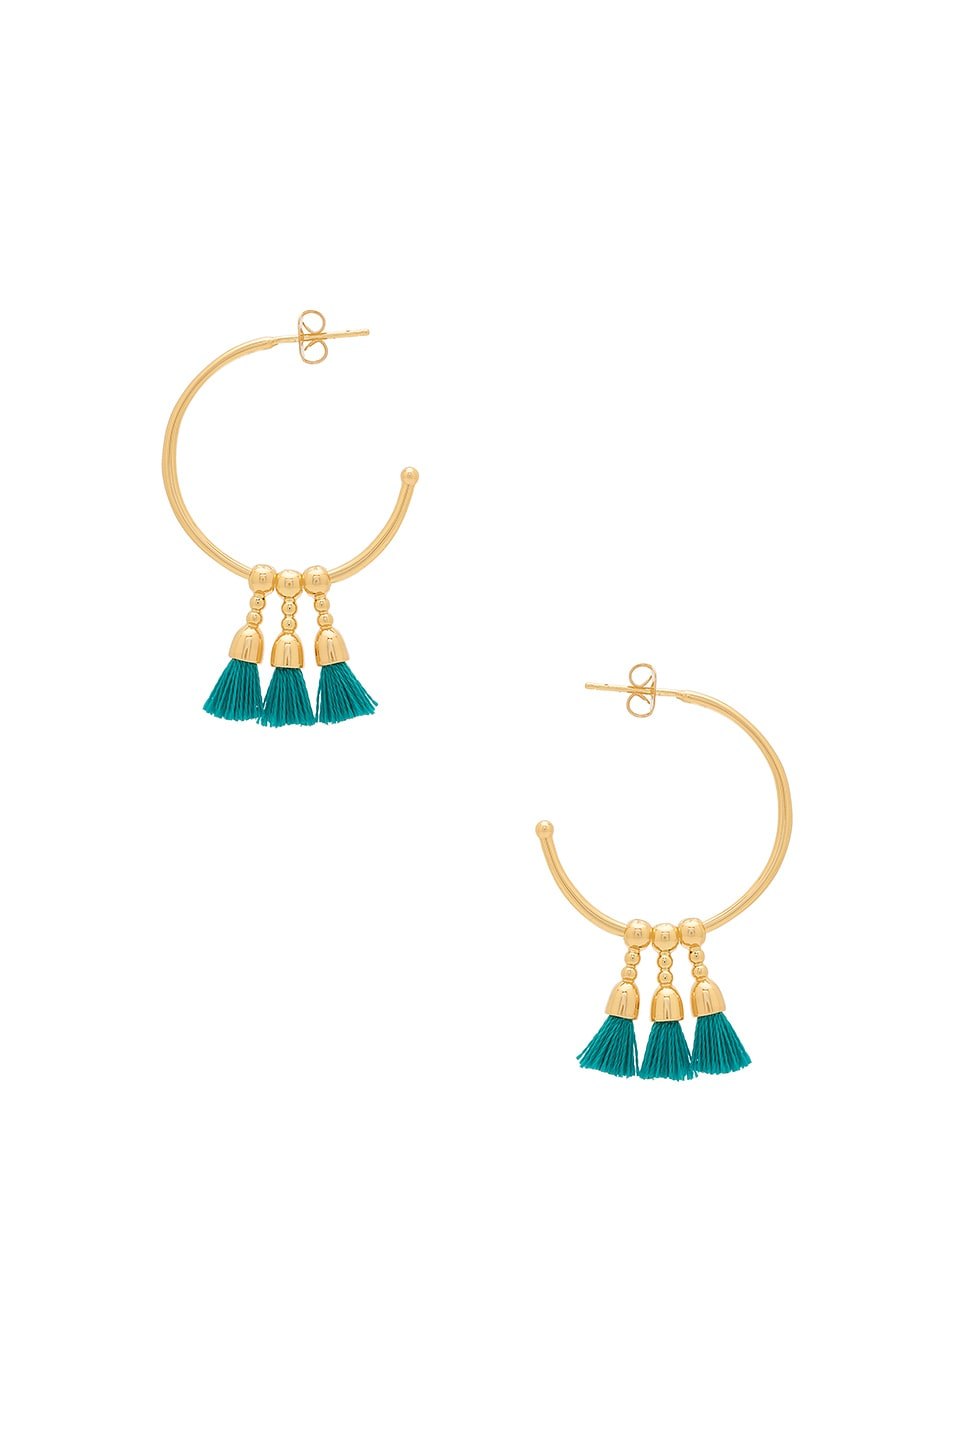 gorjana Baja Hoop Earrings in Teal & Gold